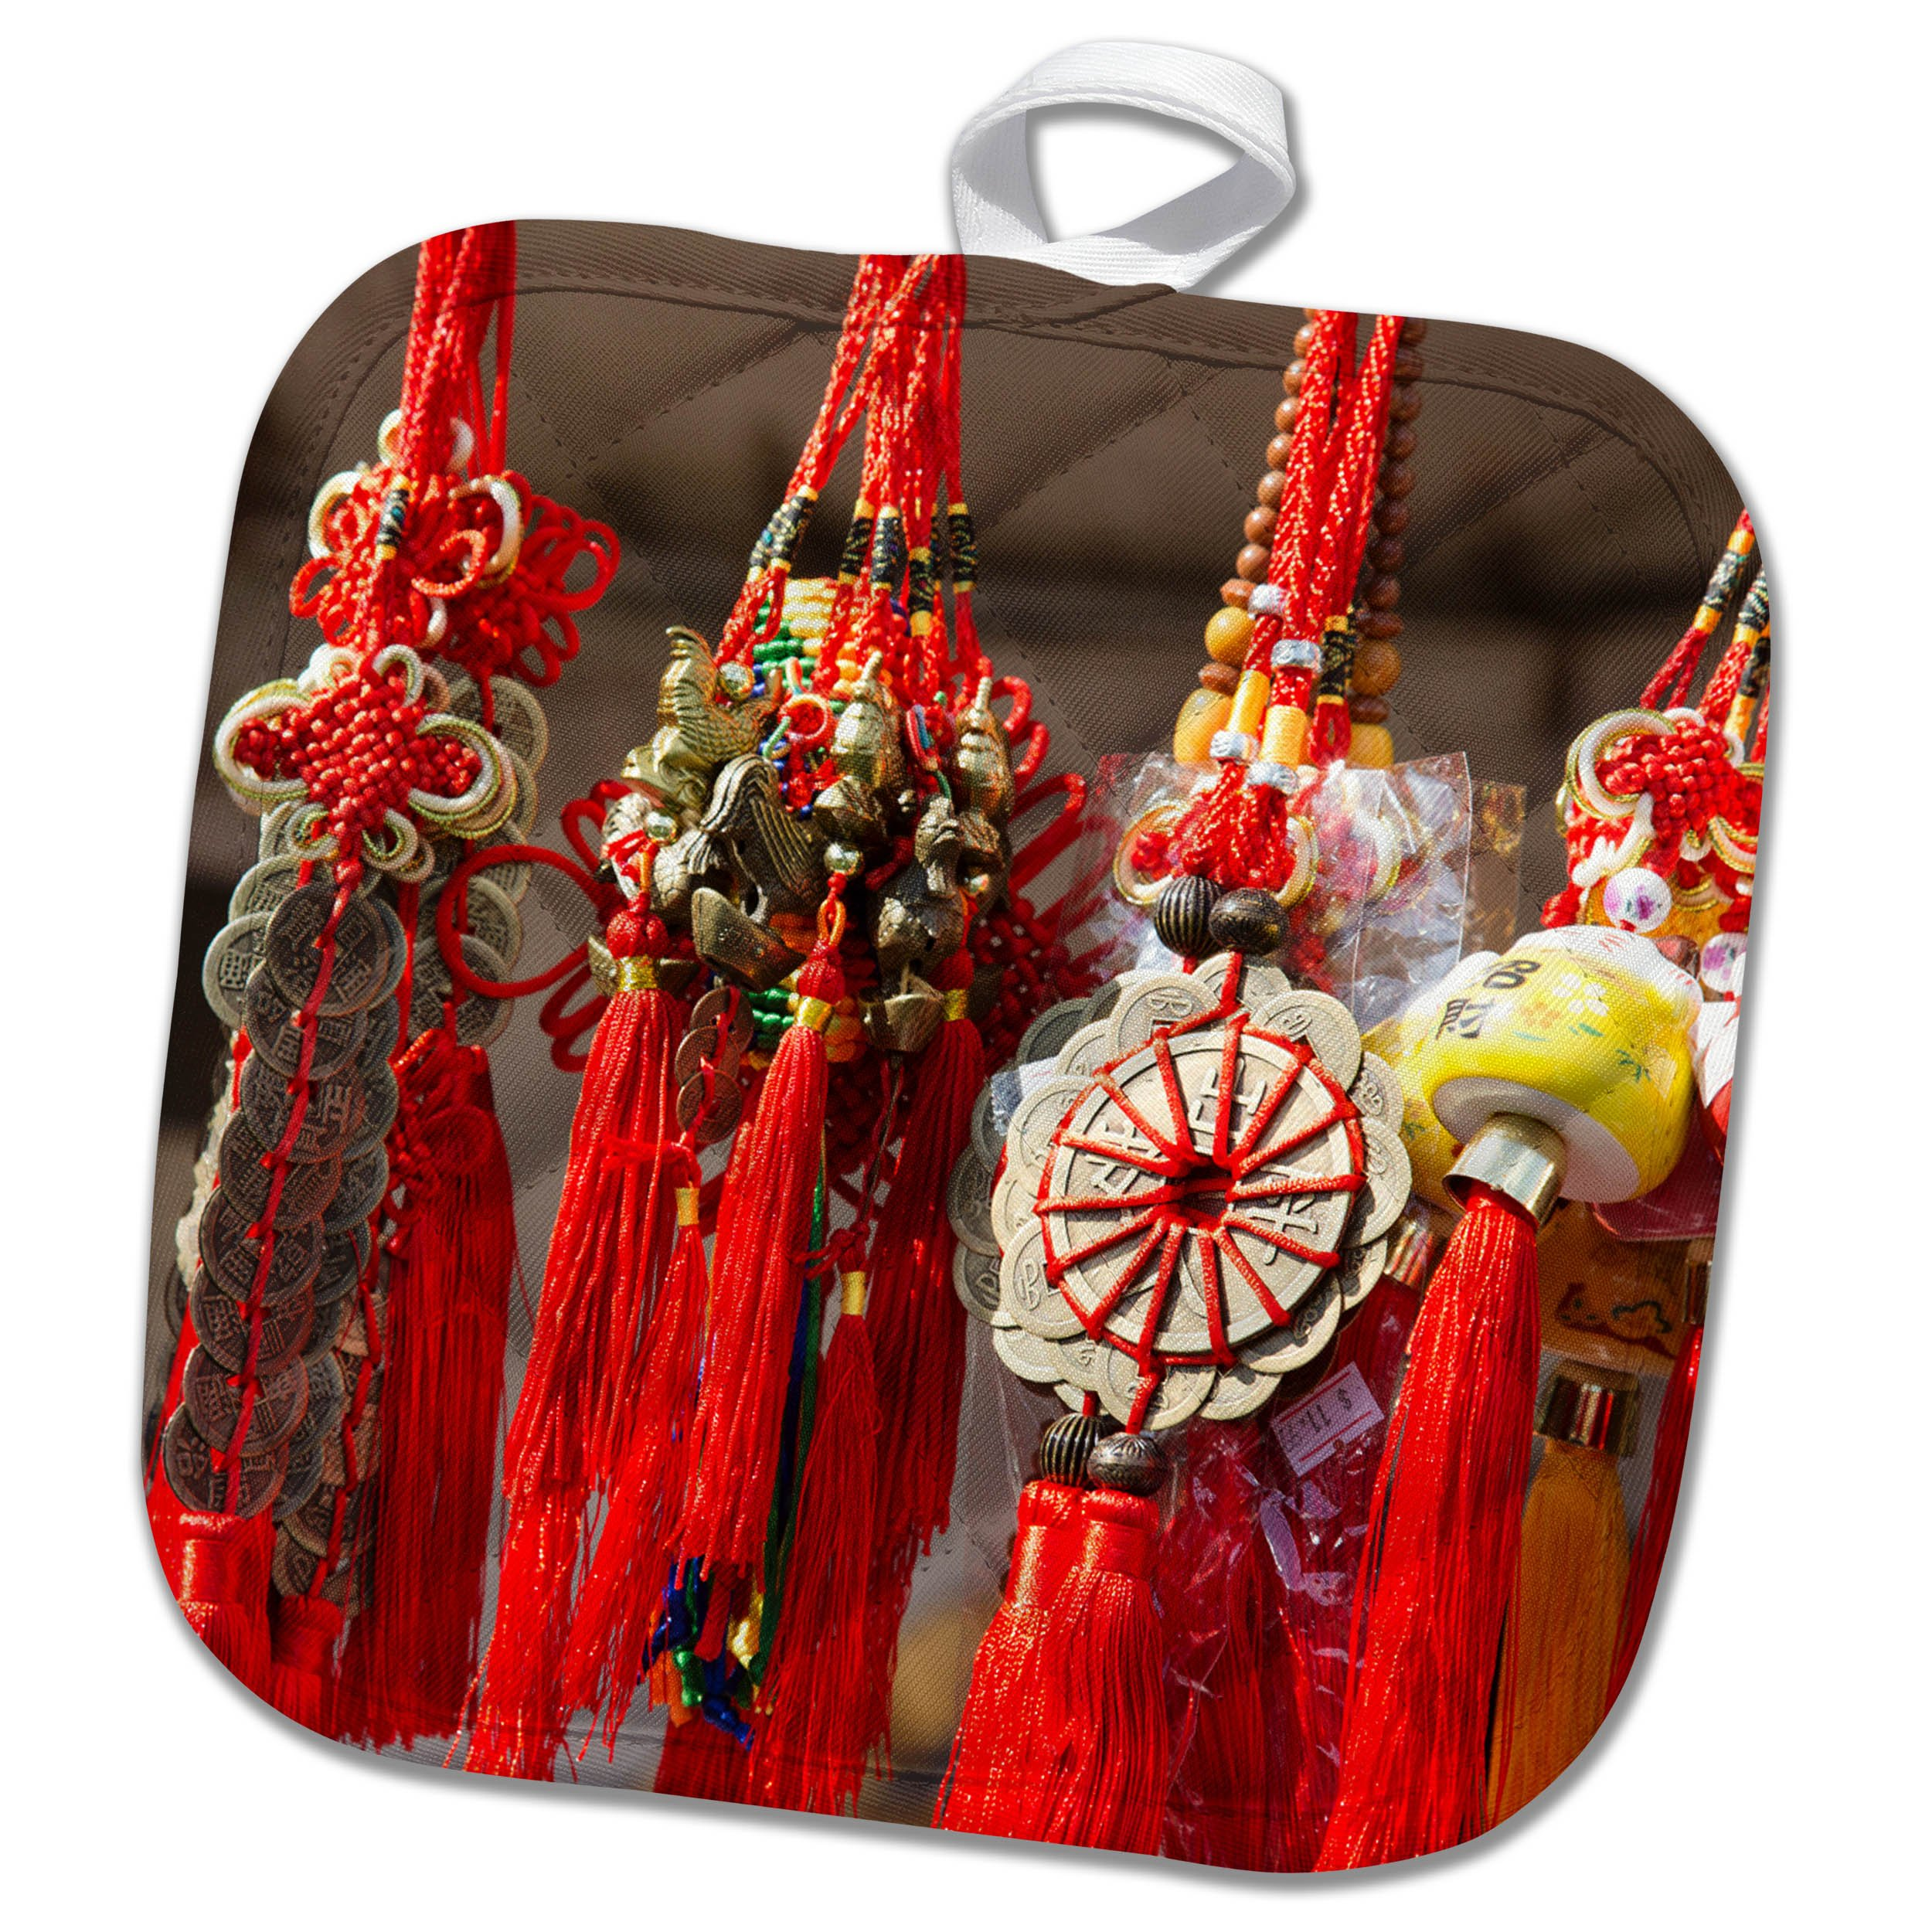 3dRose Danita Delimont - Markets - USA, Arizona, Phoenix. Traditional tassels at Chinese Festival. - 8x8 Potholder (phl_278447_1)